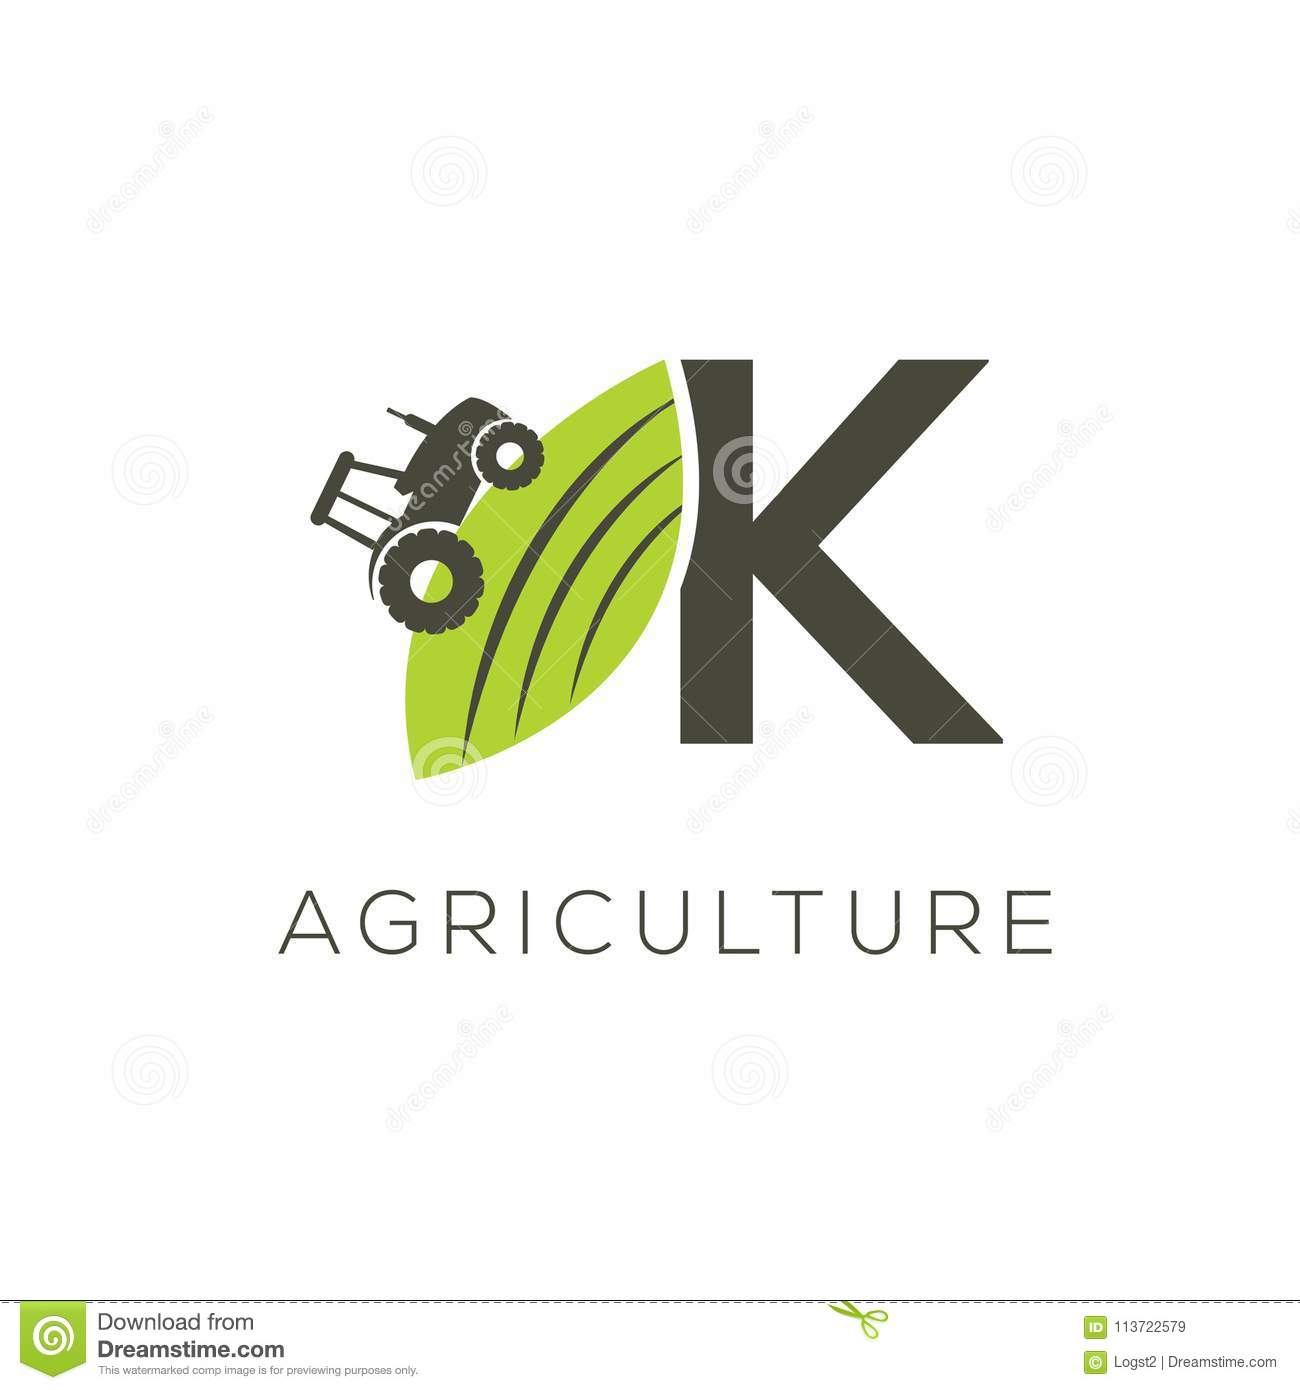 Agriculture logo letter K. Tractor icon. Green food emblem